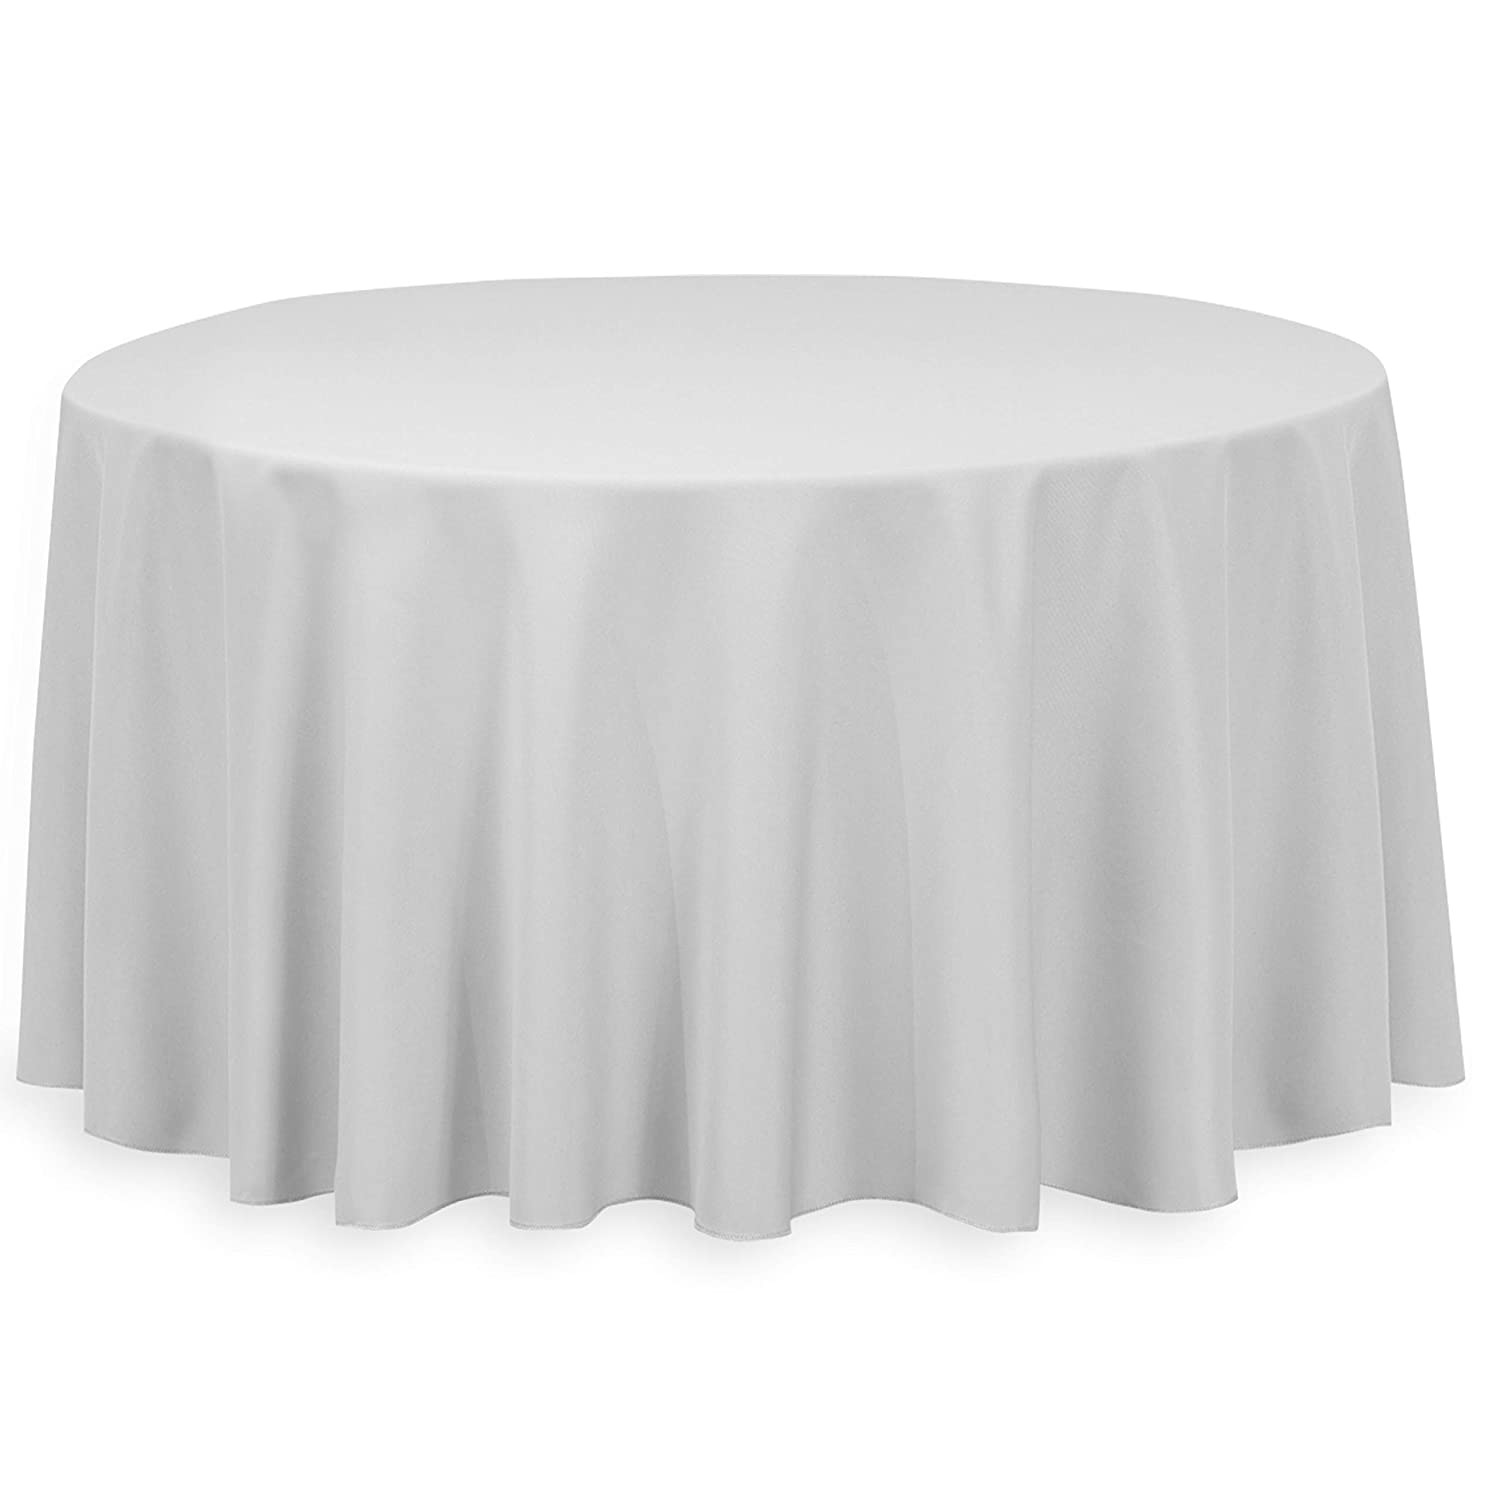 Round Table With Tablecloth.Linentablecloth 120 Inch Round Polyester Tablecloth Silver